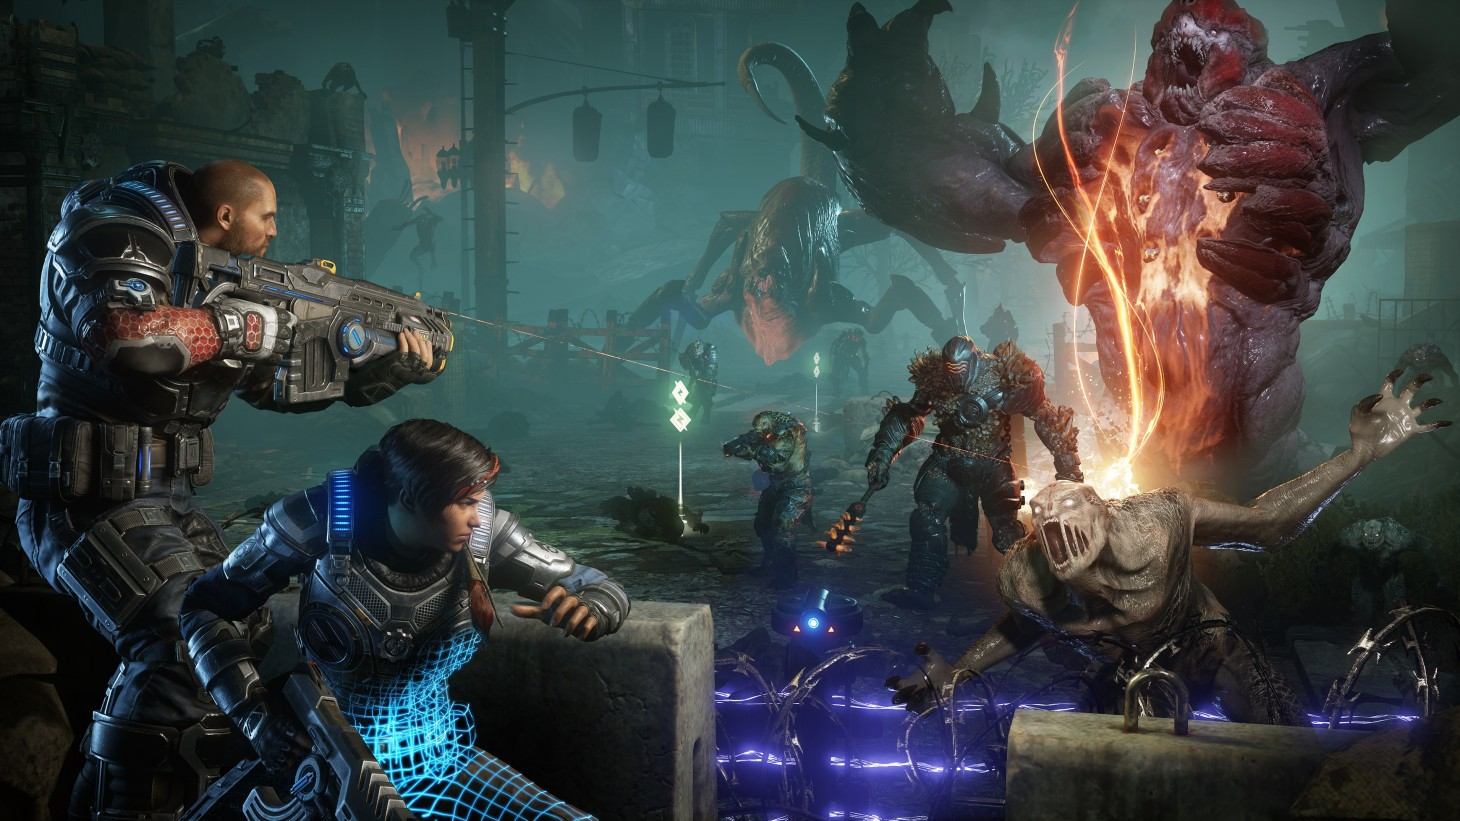 Not Earning XP Or Collectibles In Gears 5? You're Not Alone